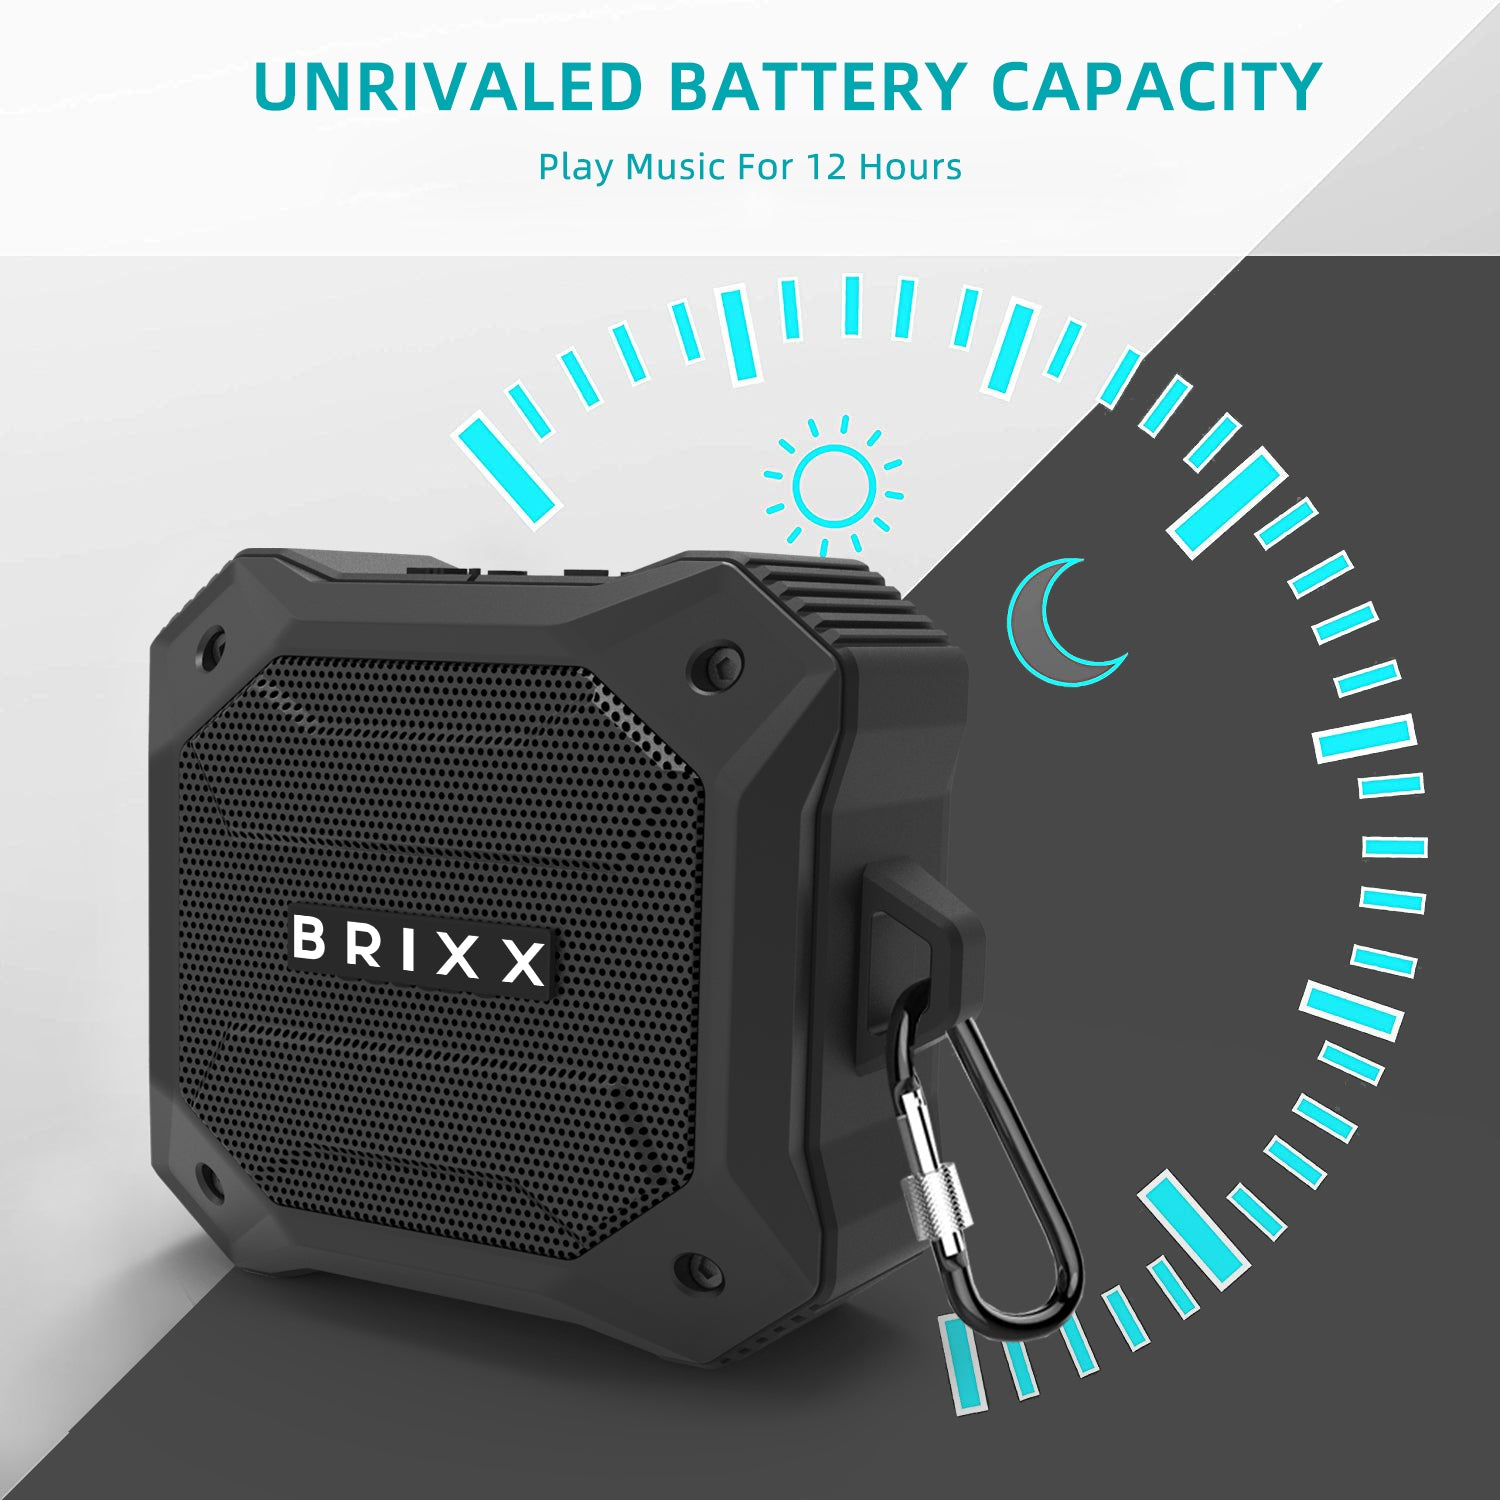 Brixx Explorer D520 Rugged Outdoor Bluetooth Speaker(Grey & Black)